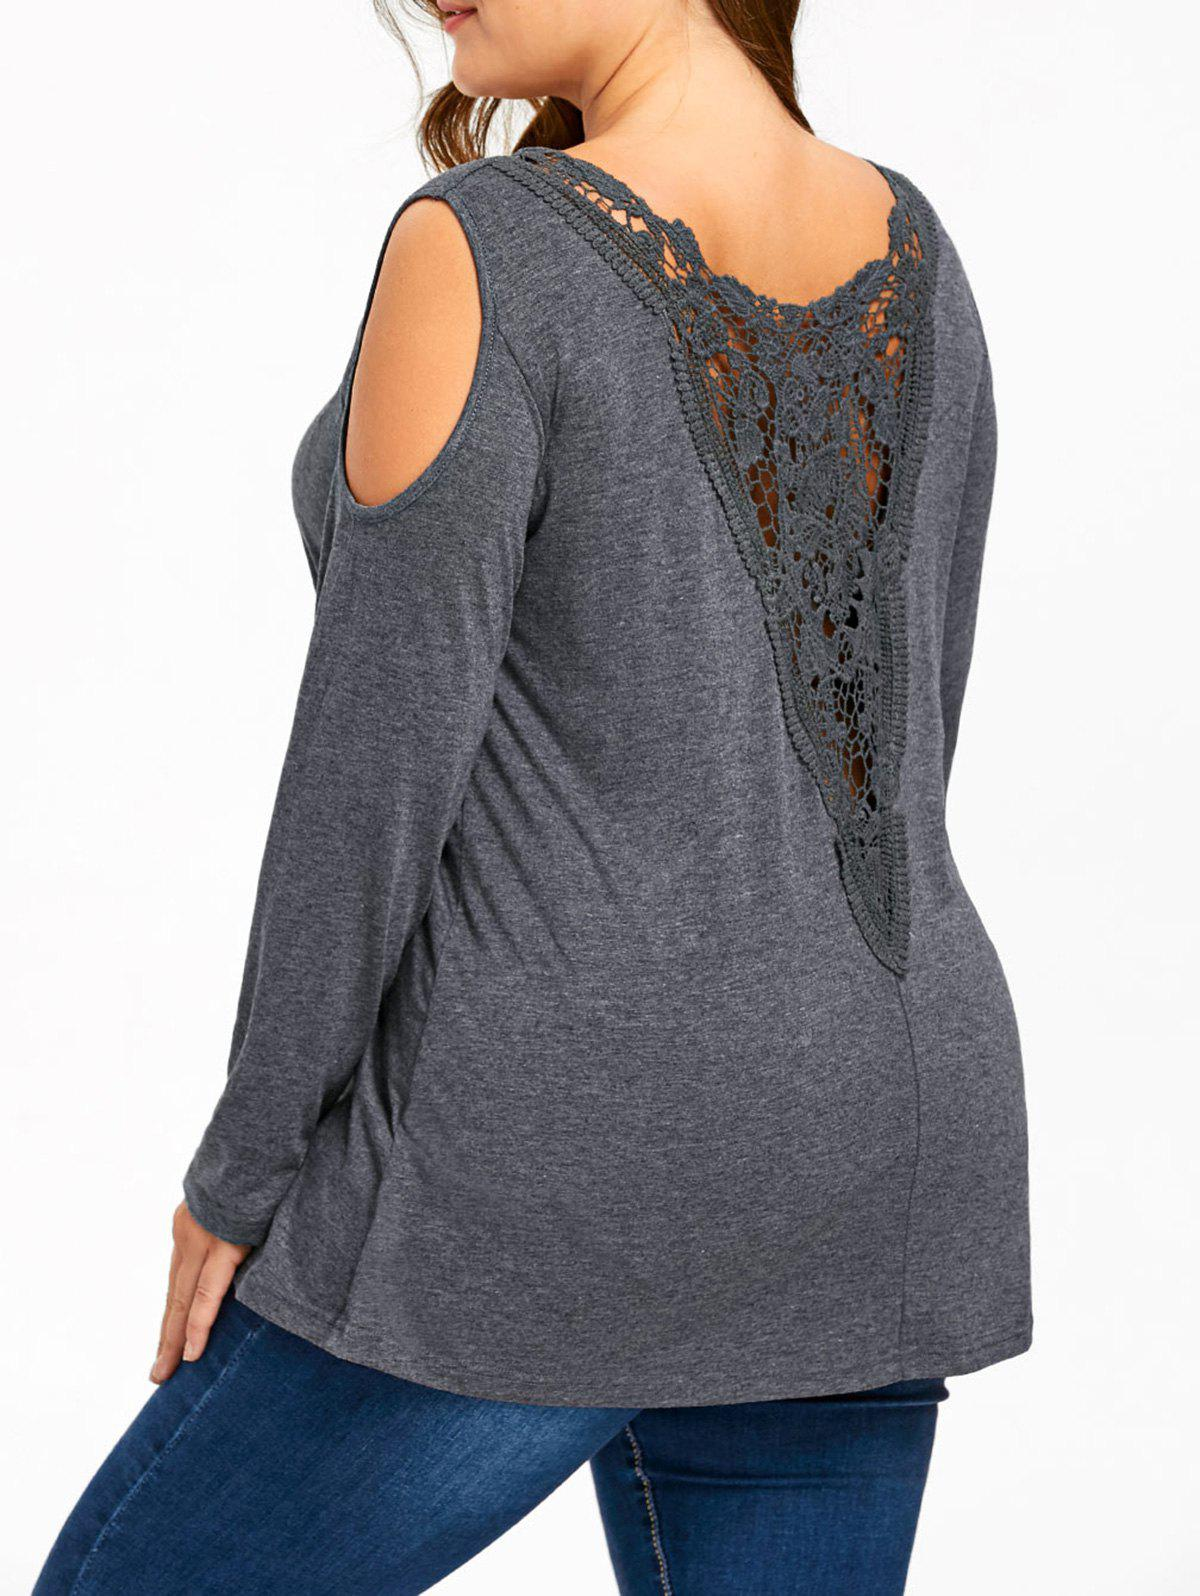 Plus Size Long Sleeve Lace Panel Cut Out T-shirtWOMEN<br><br>Size: 5XL; Color: GRAY; Material: Cotton,Spandex; Shirt Length: Long; Sleeve Length: Full; Collar: Scoop Neck; Style: Casual; Season: Fall,Spring; Embellishment: Cut Out,Lace,Panel; Pattern Type: Others; Weight: 0.3000kg; Package Contents: 1 x T-shirt;